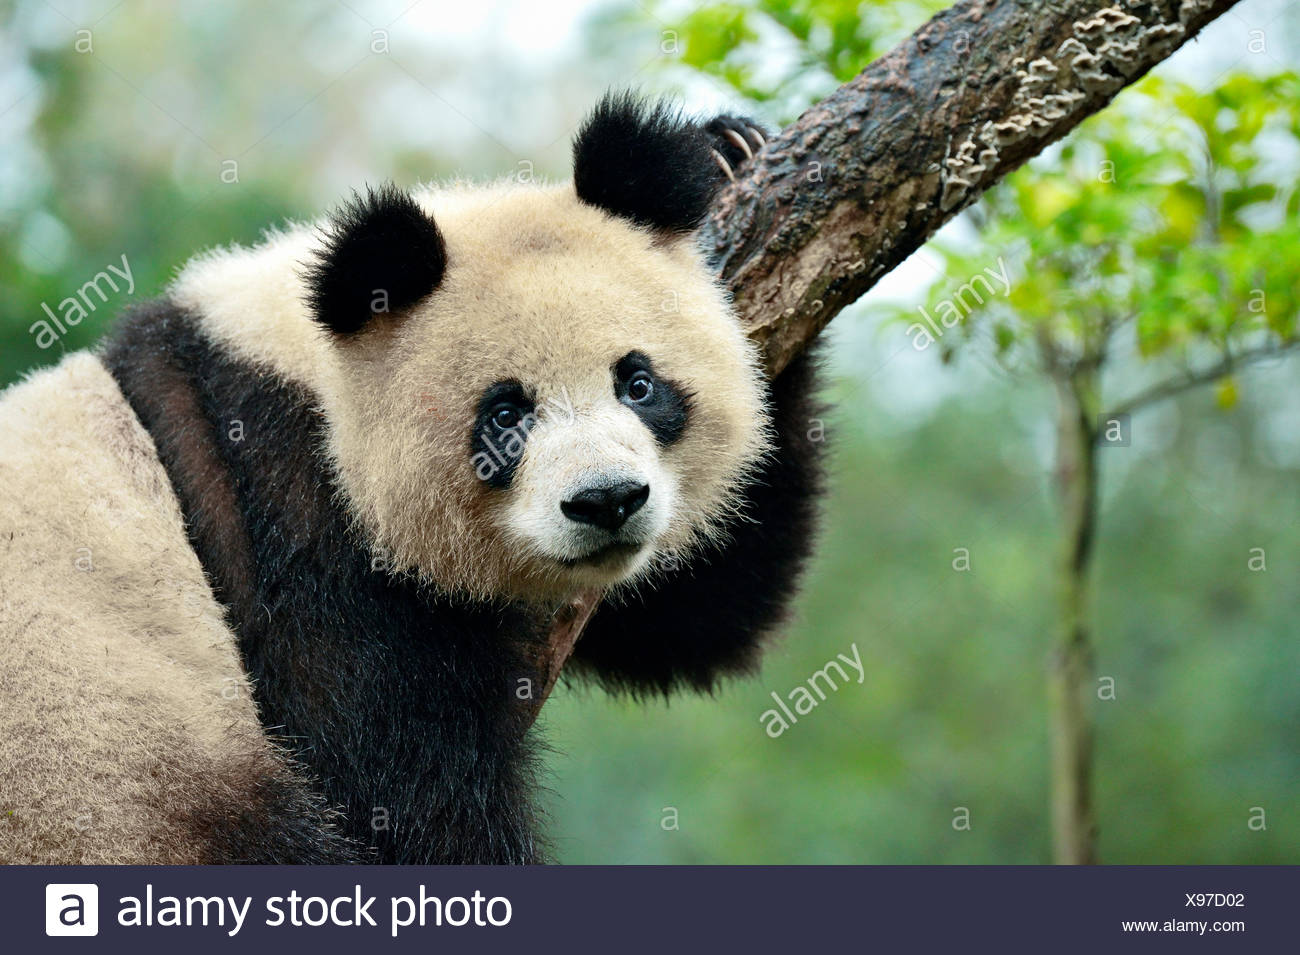 Giant Panda (Ailuropoda melanoleuca) perched on a tree, captive, Chengdu Research Base of Giant Panda Breeding or Chengdu Panda - Stock Image